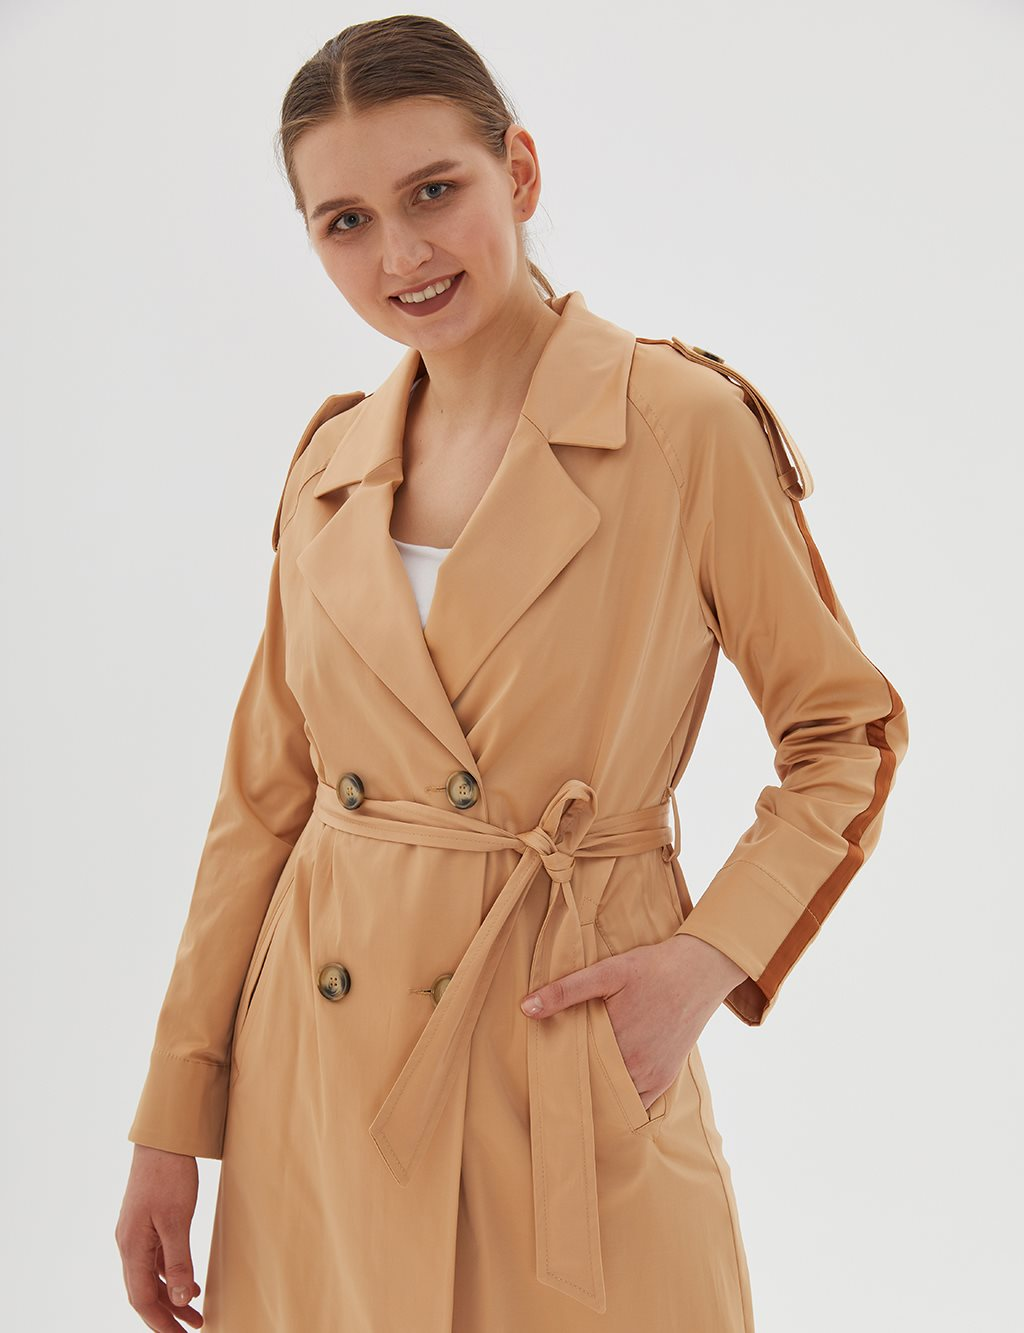 Striped Trenchcoat With Belt Beige B20 14024